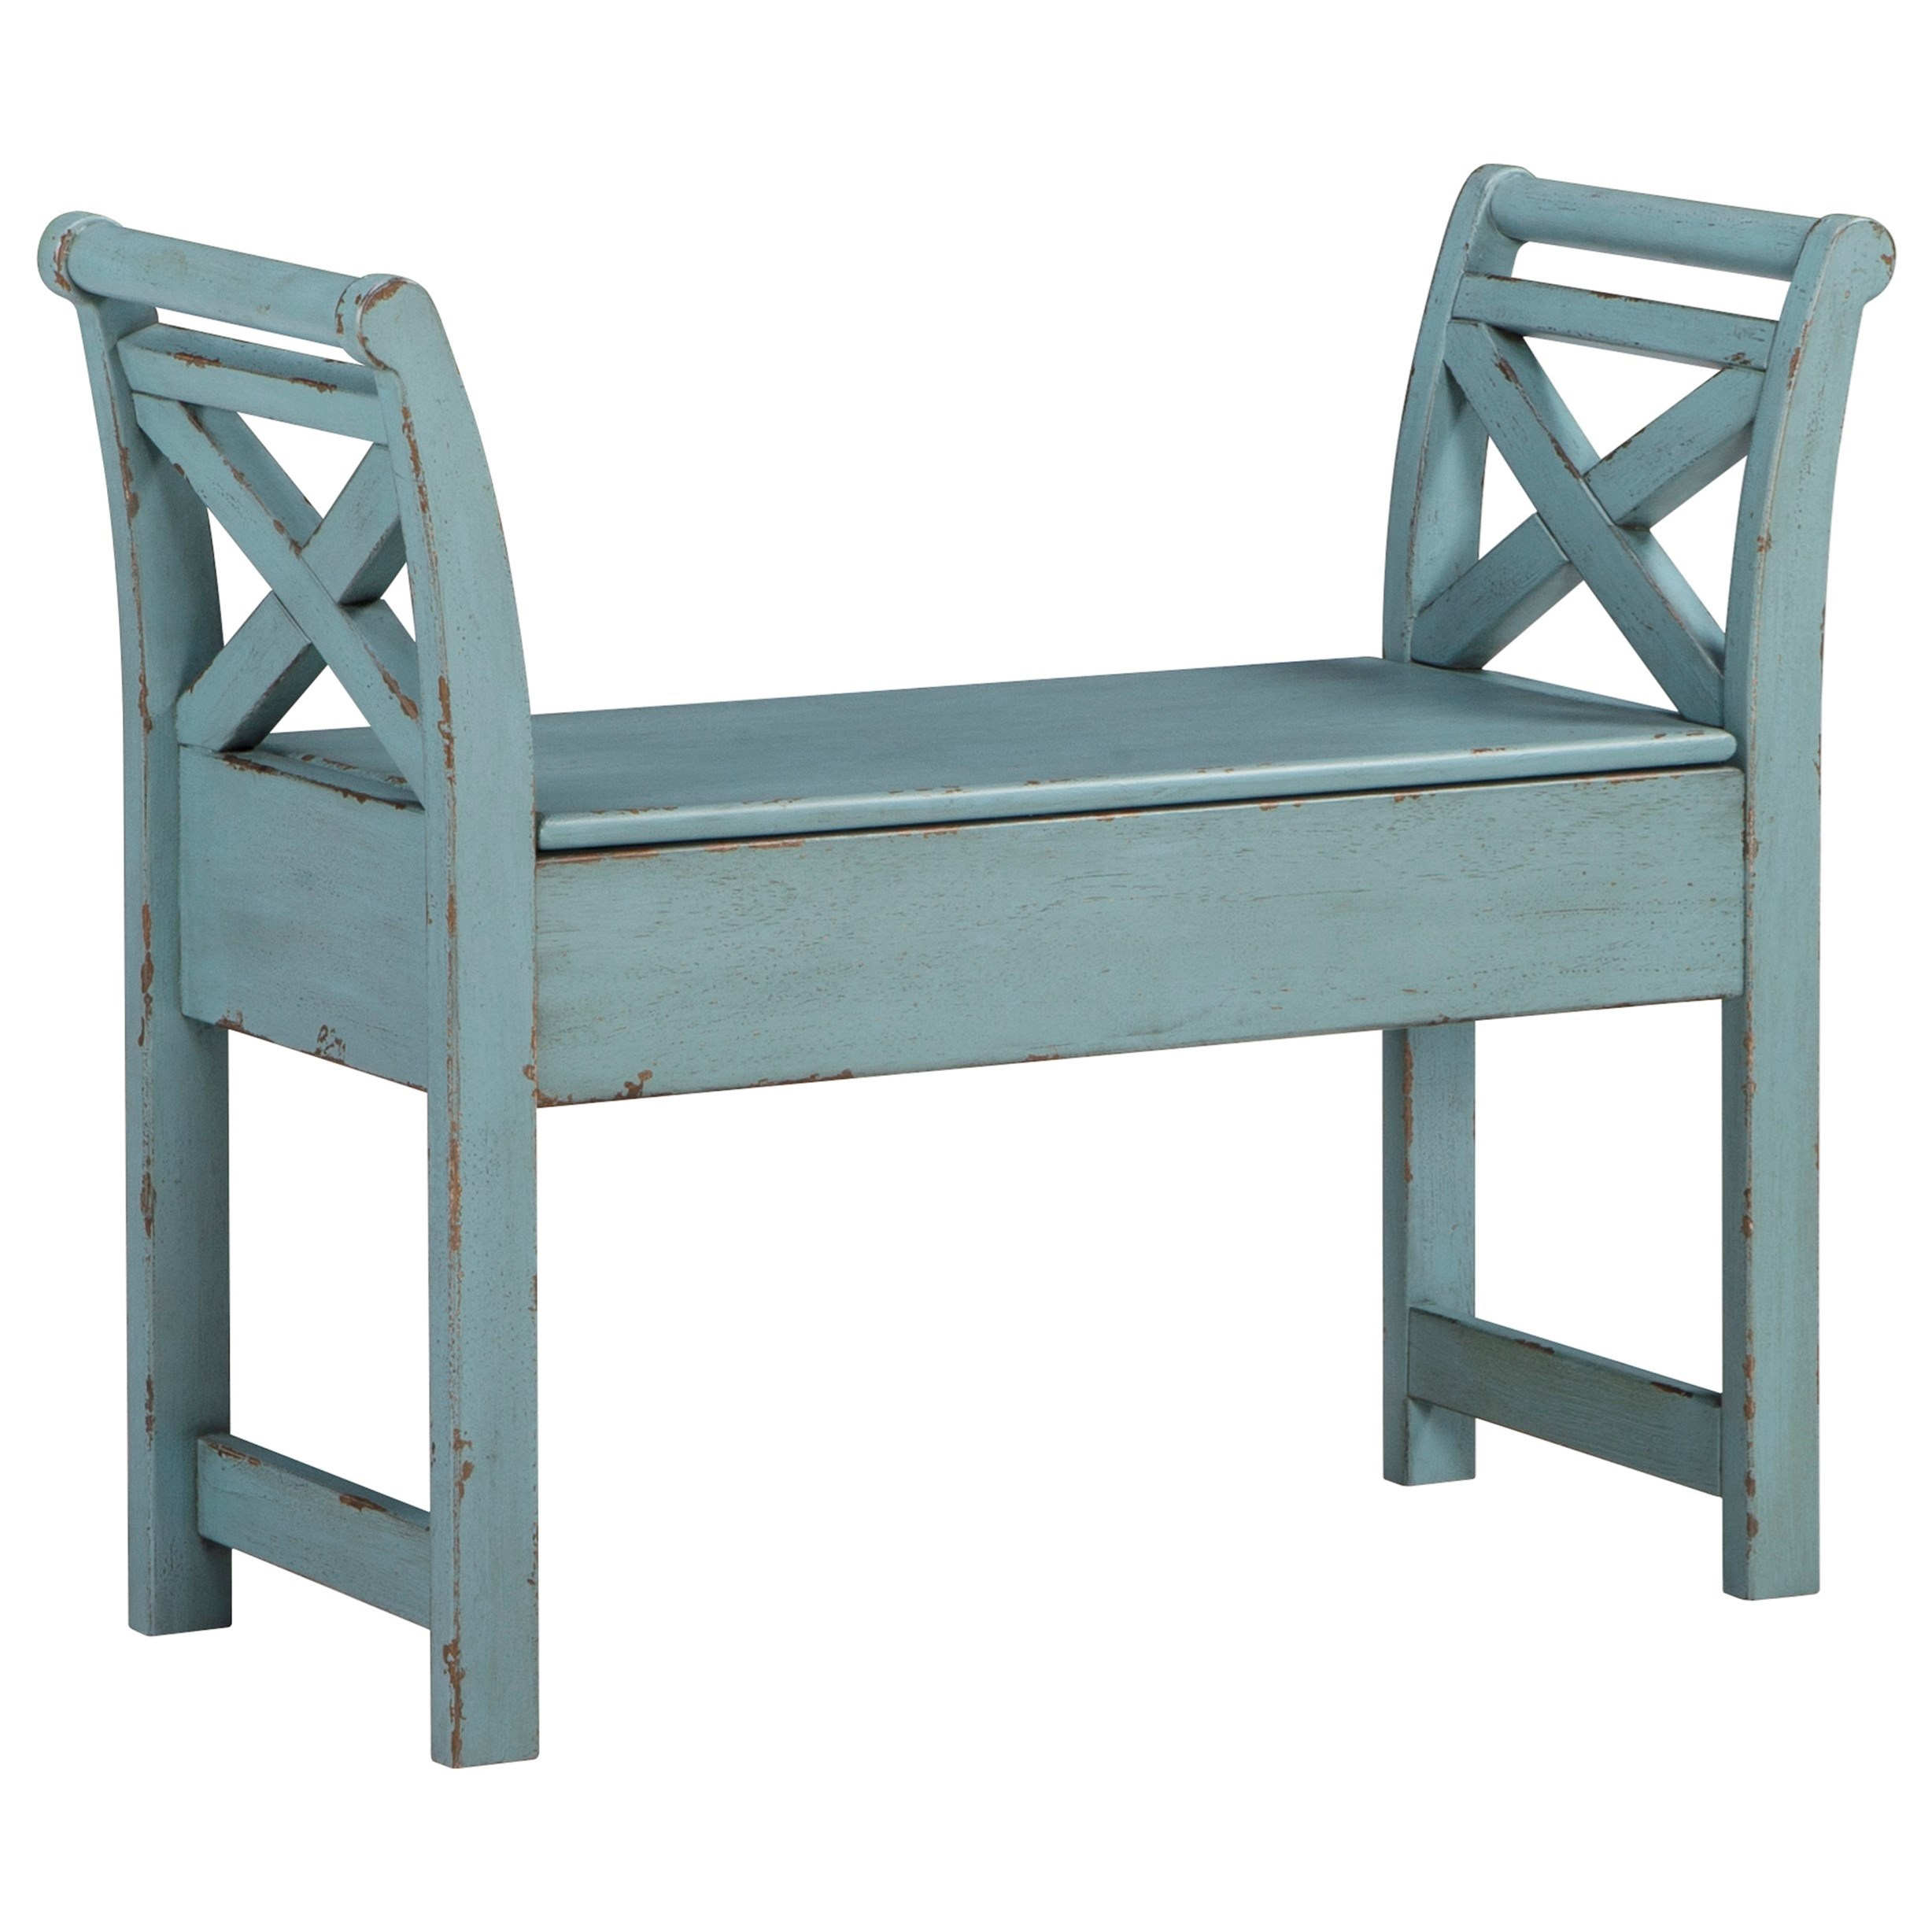 Heron Ridge Accent Bench by Signature at Walker's Furniture